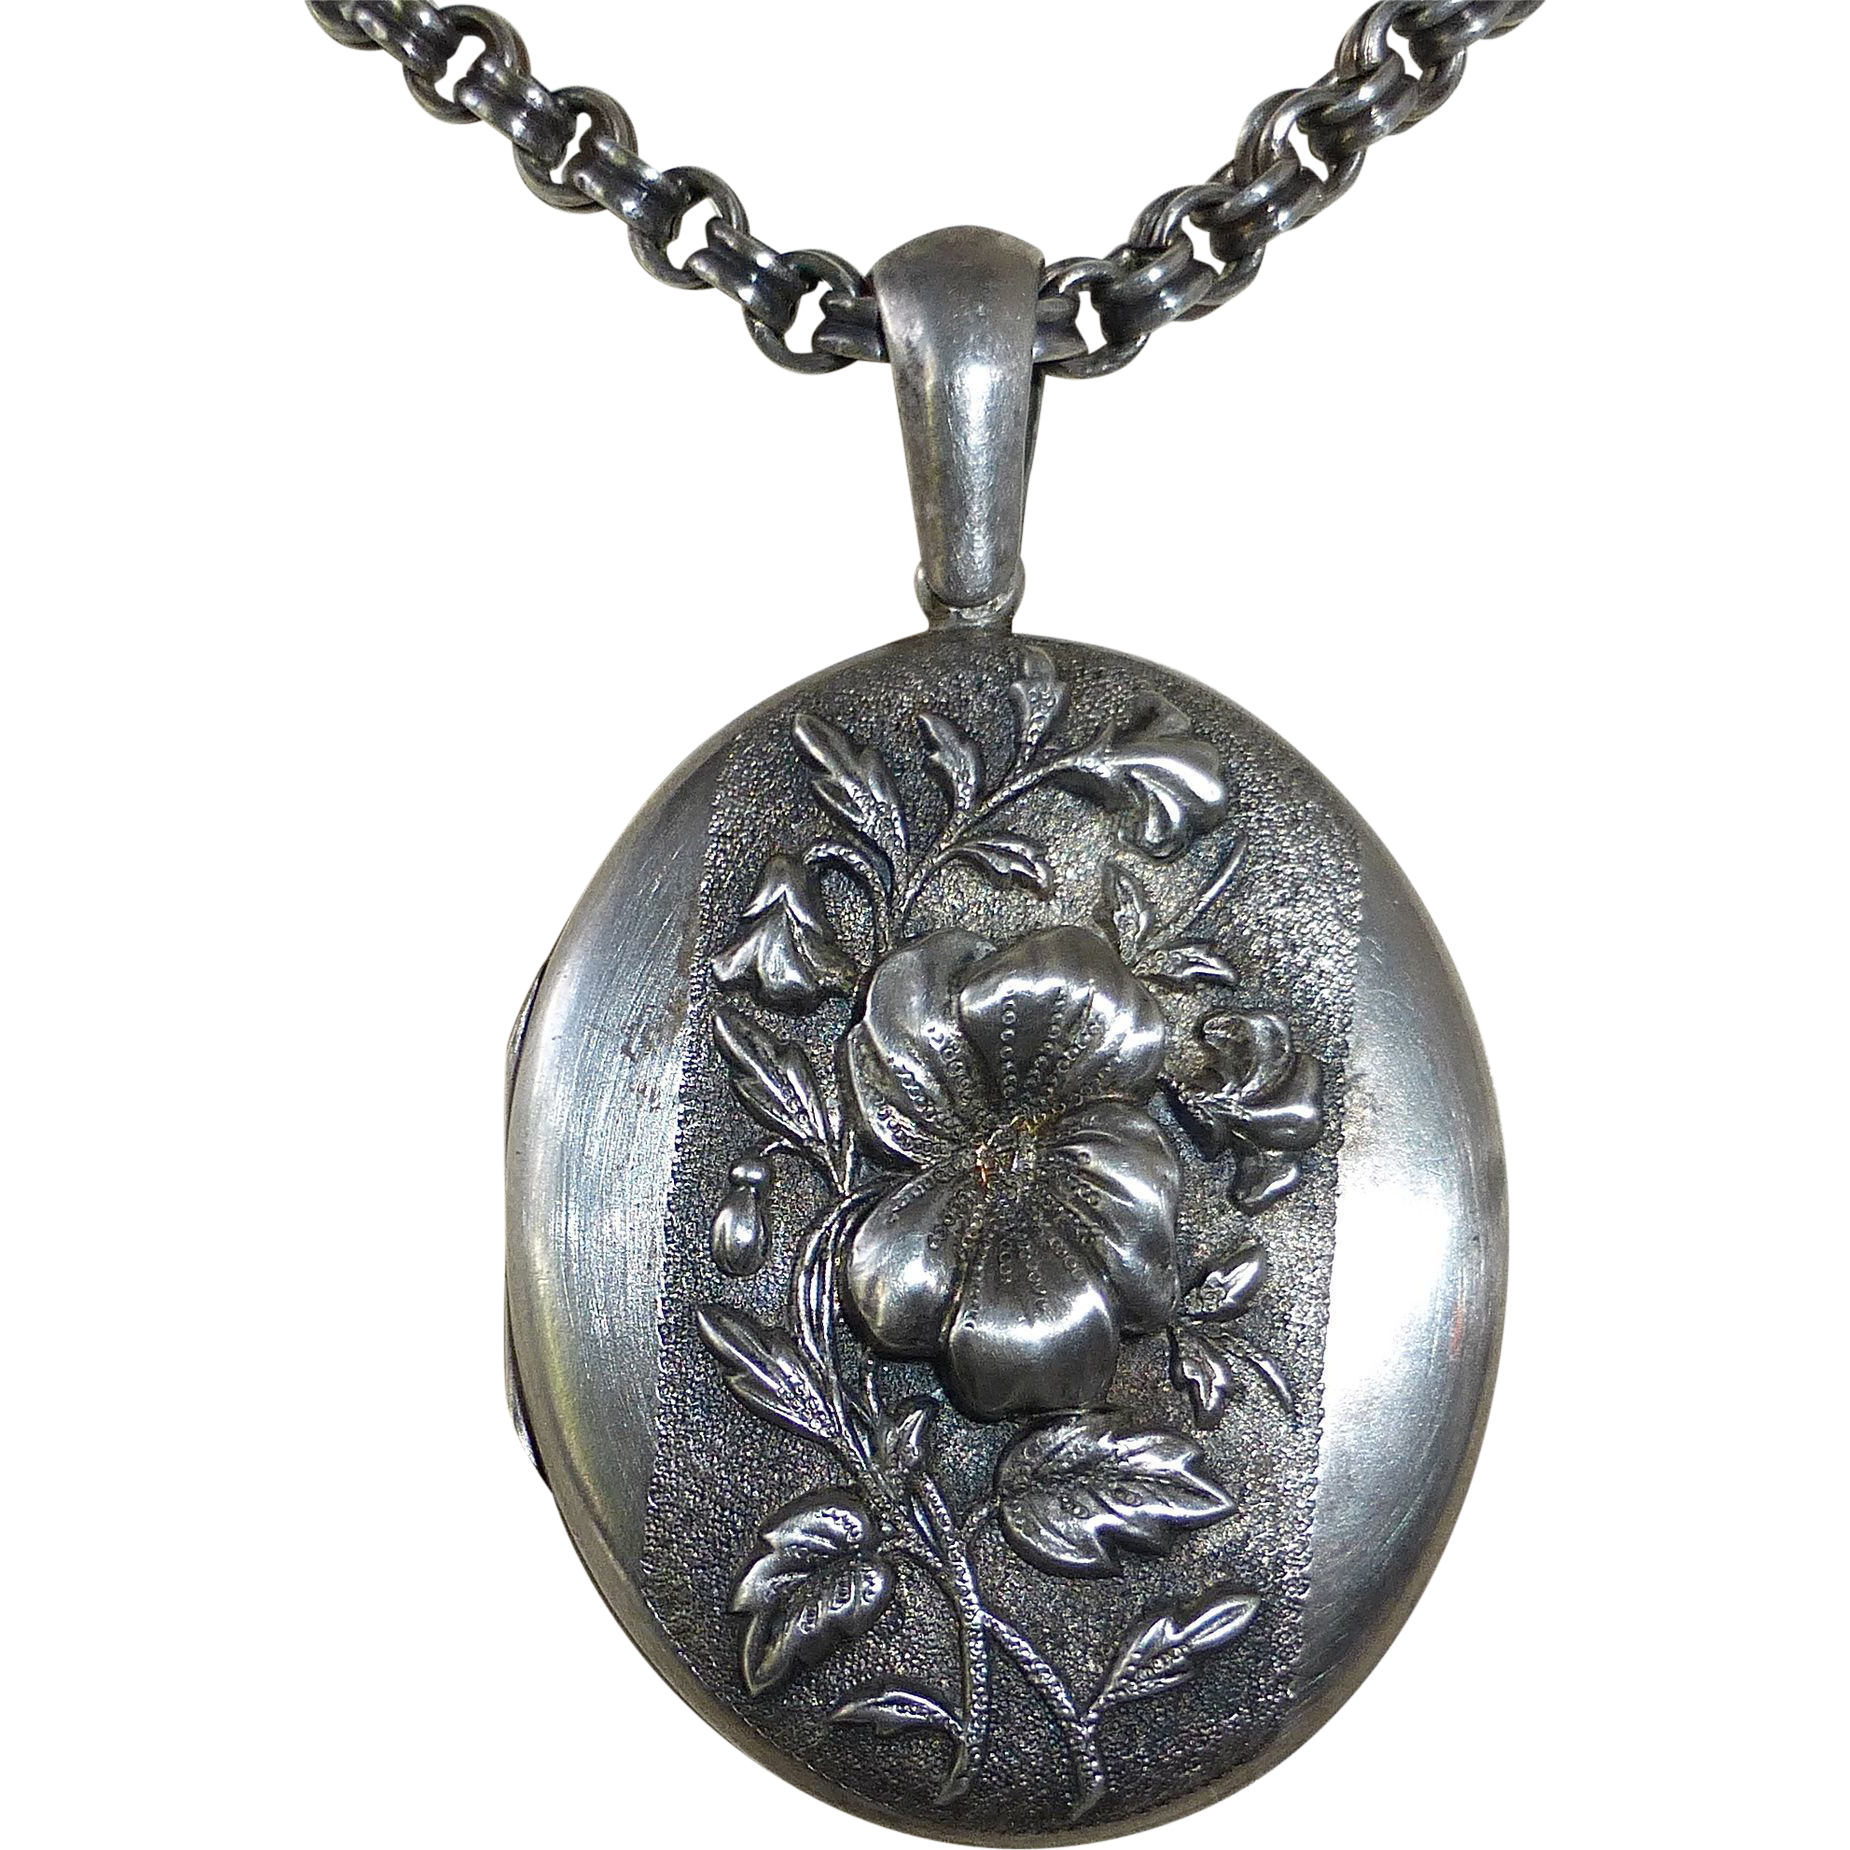 Antique Aesthetic Sterling Repousse Floral Locket & Chain